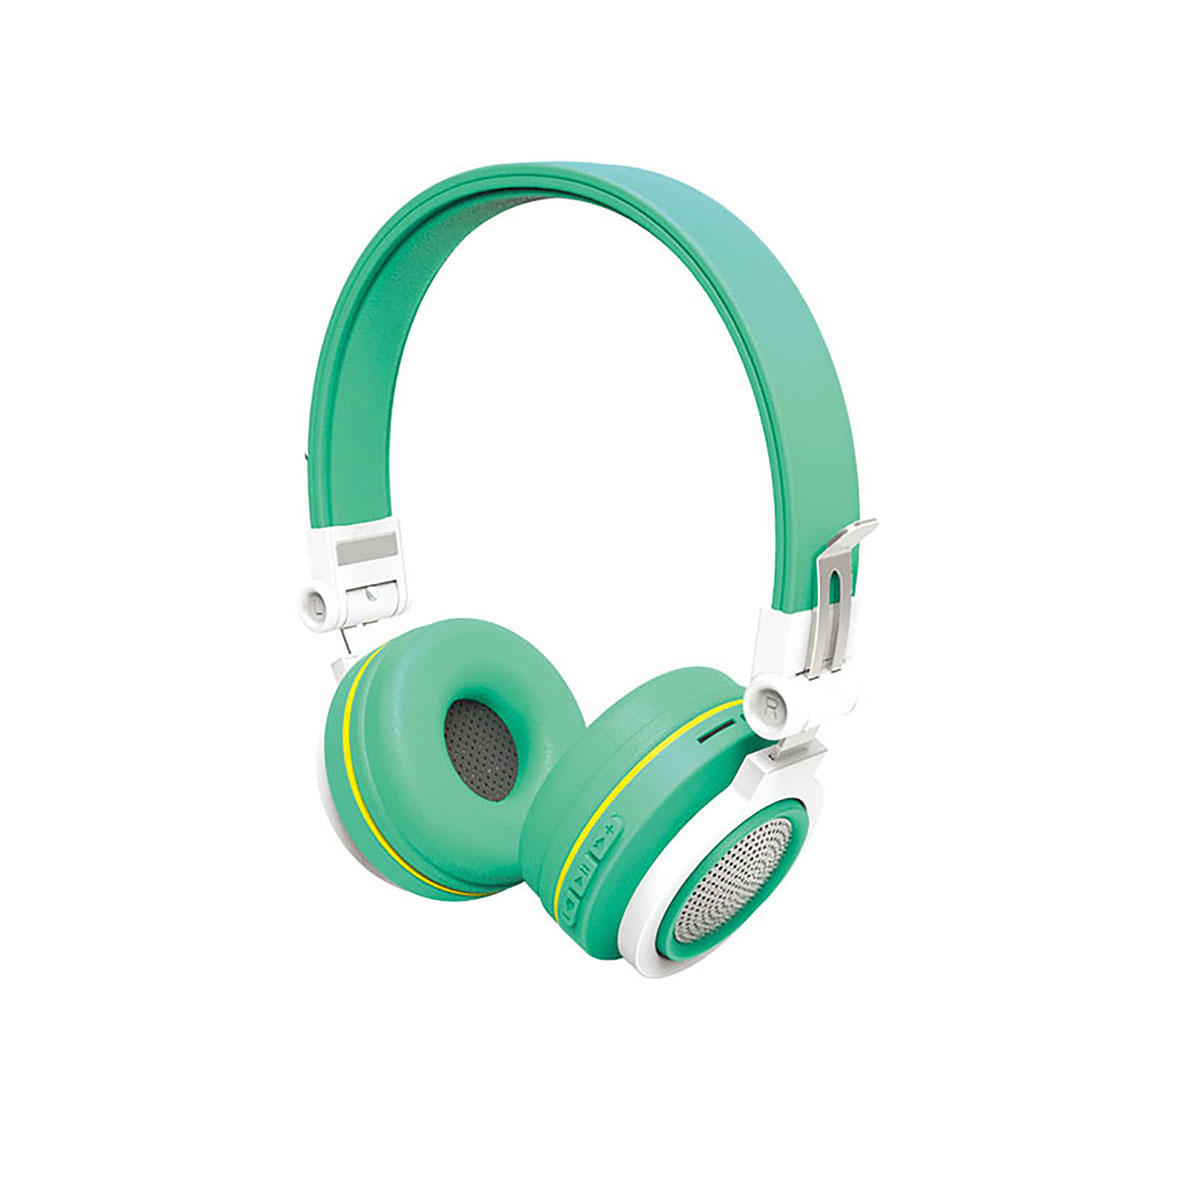 YueMai Acoustic Technology workout earbuds series for kids and adults-2